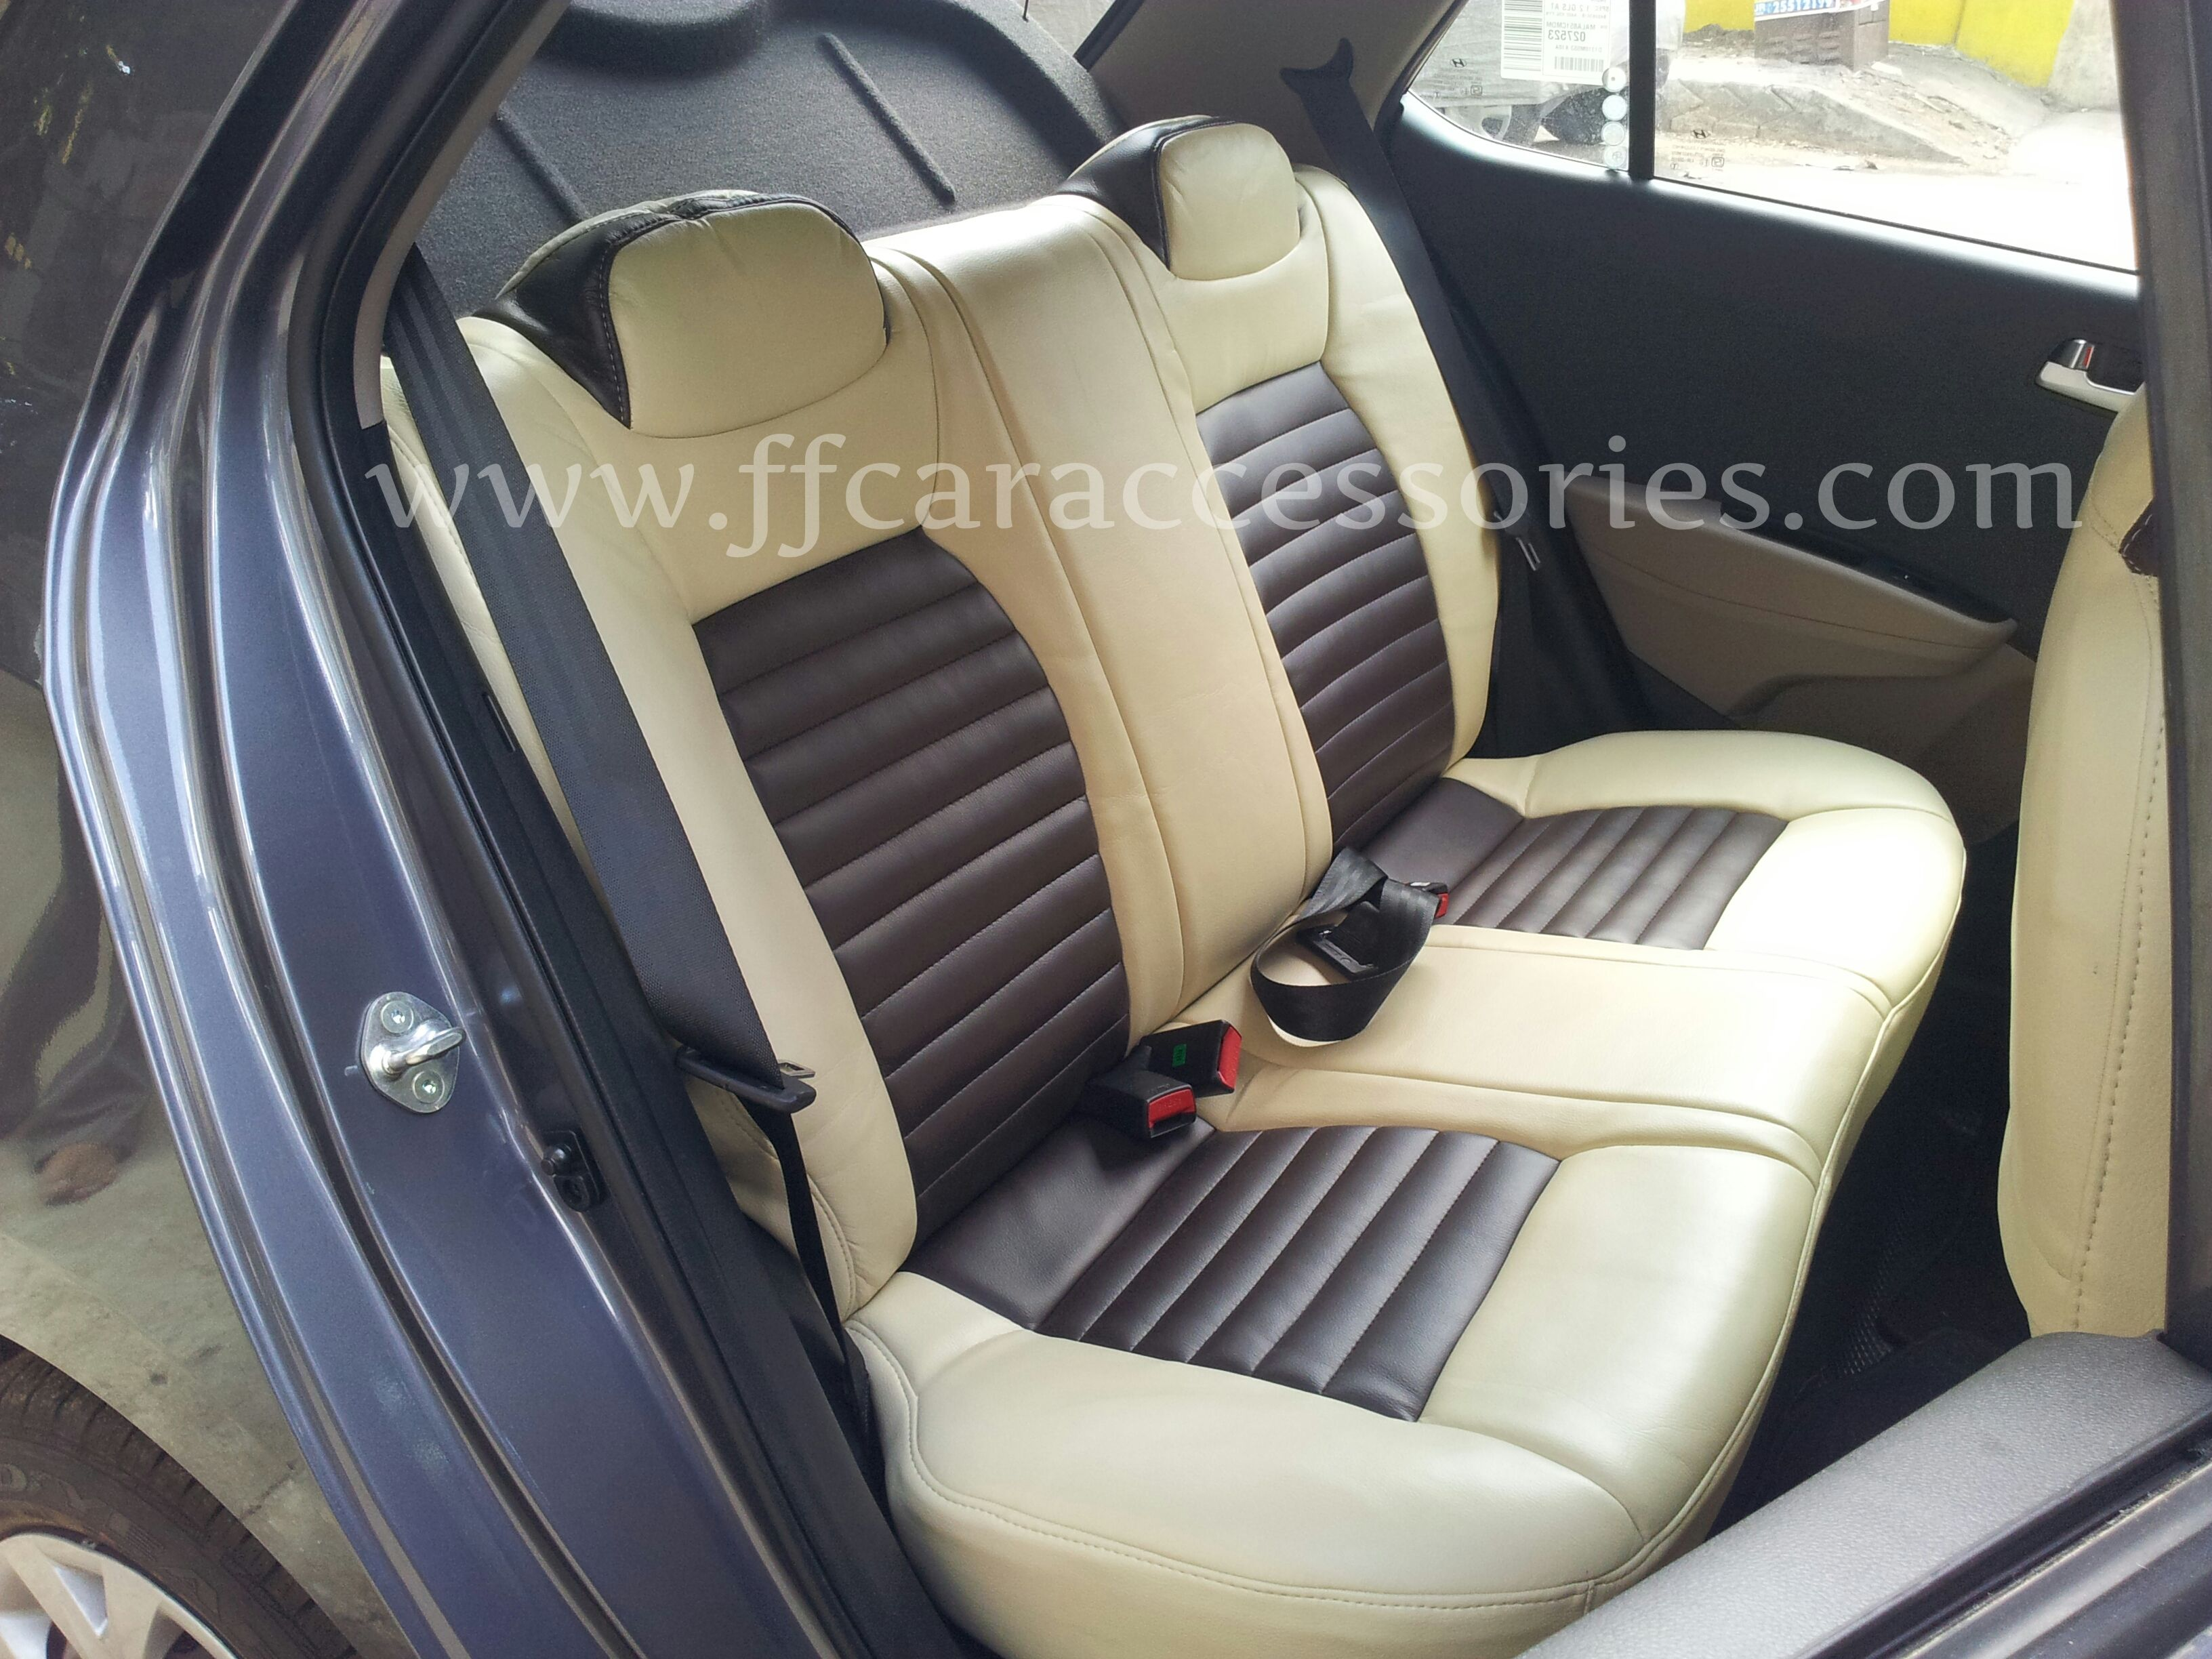 HYUNDAI Grand I 10 custom fit car seat covers work done by Team FF ...